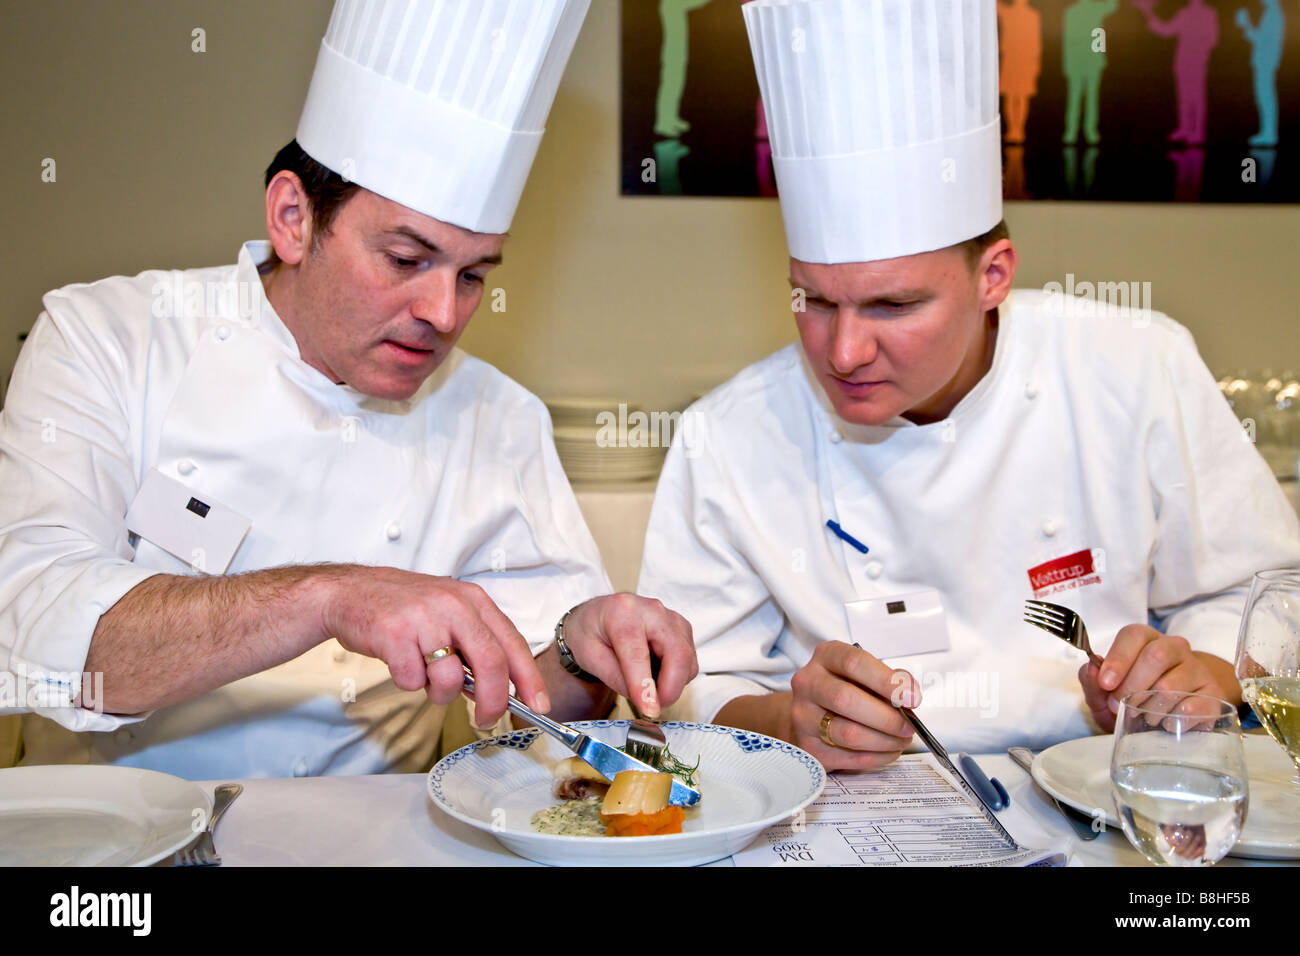 Two referees tasting the food at the cooking championship - Stock Image